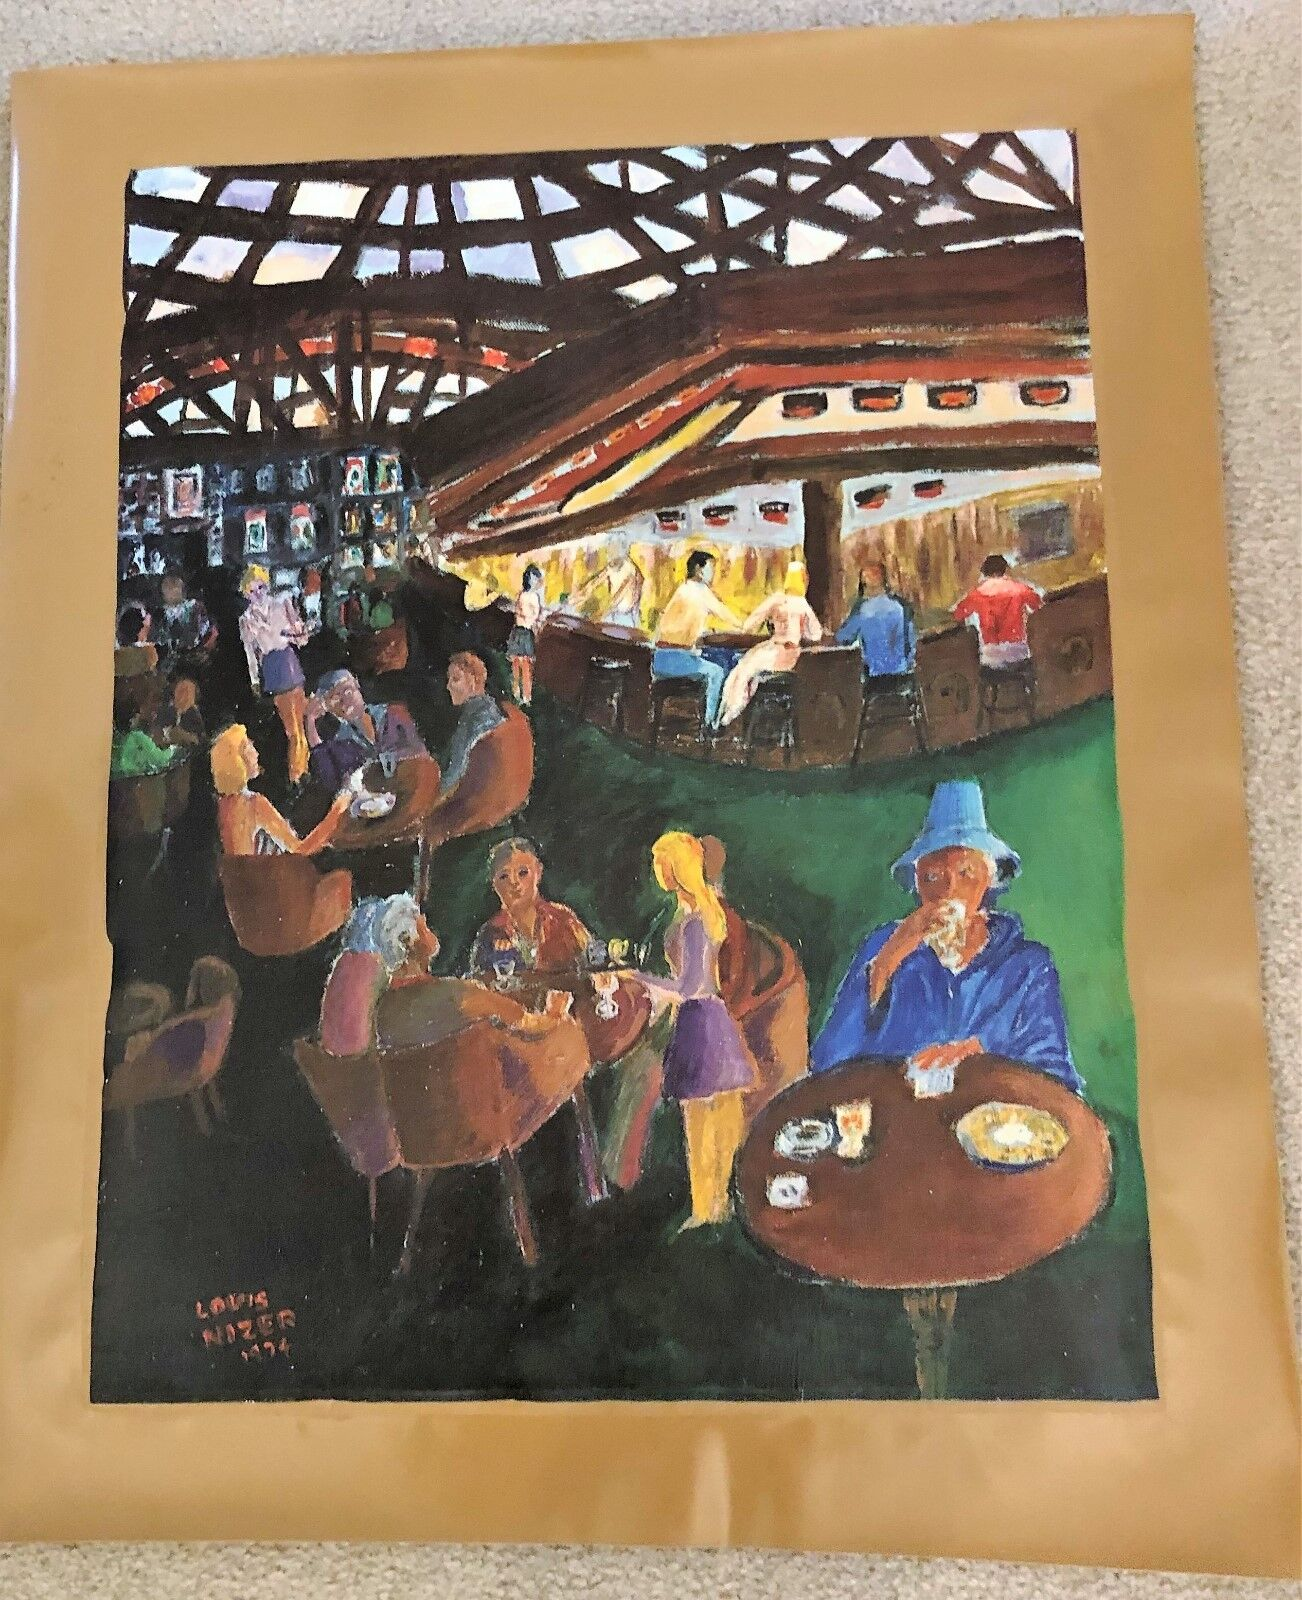 AUTHENTIC ARTAGRAPH OIL PAINTING A BAR SCENE BY LOU NIZER SIGNED 58 / 700  - $15.00